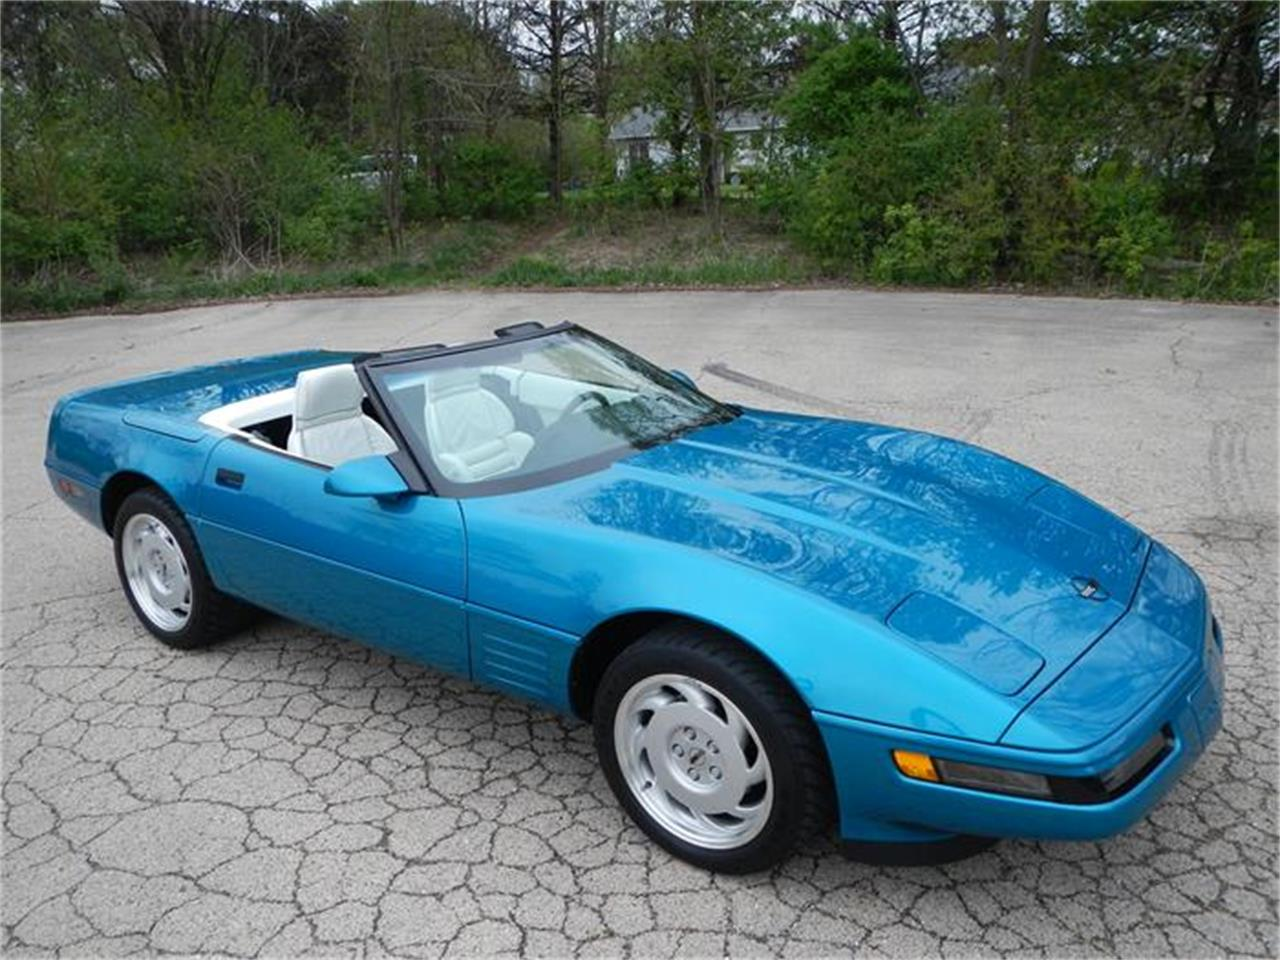 Large Picture of 1992 Chevrolet Corvette located in St. Charles Illinois - $21,900.00 Offered by Nickey - HPXT